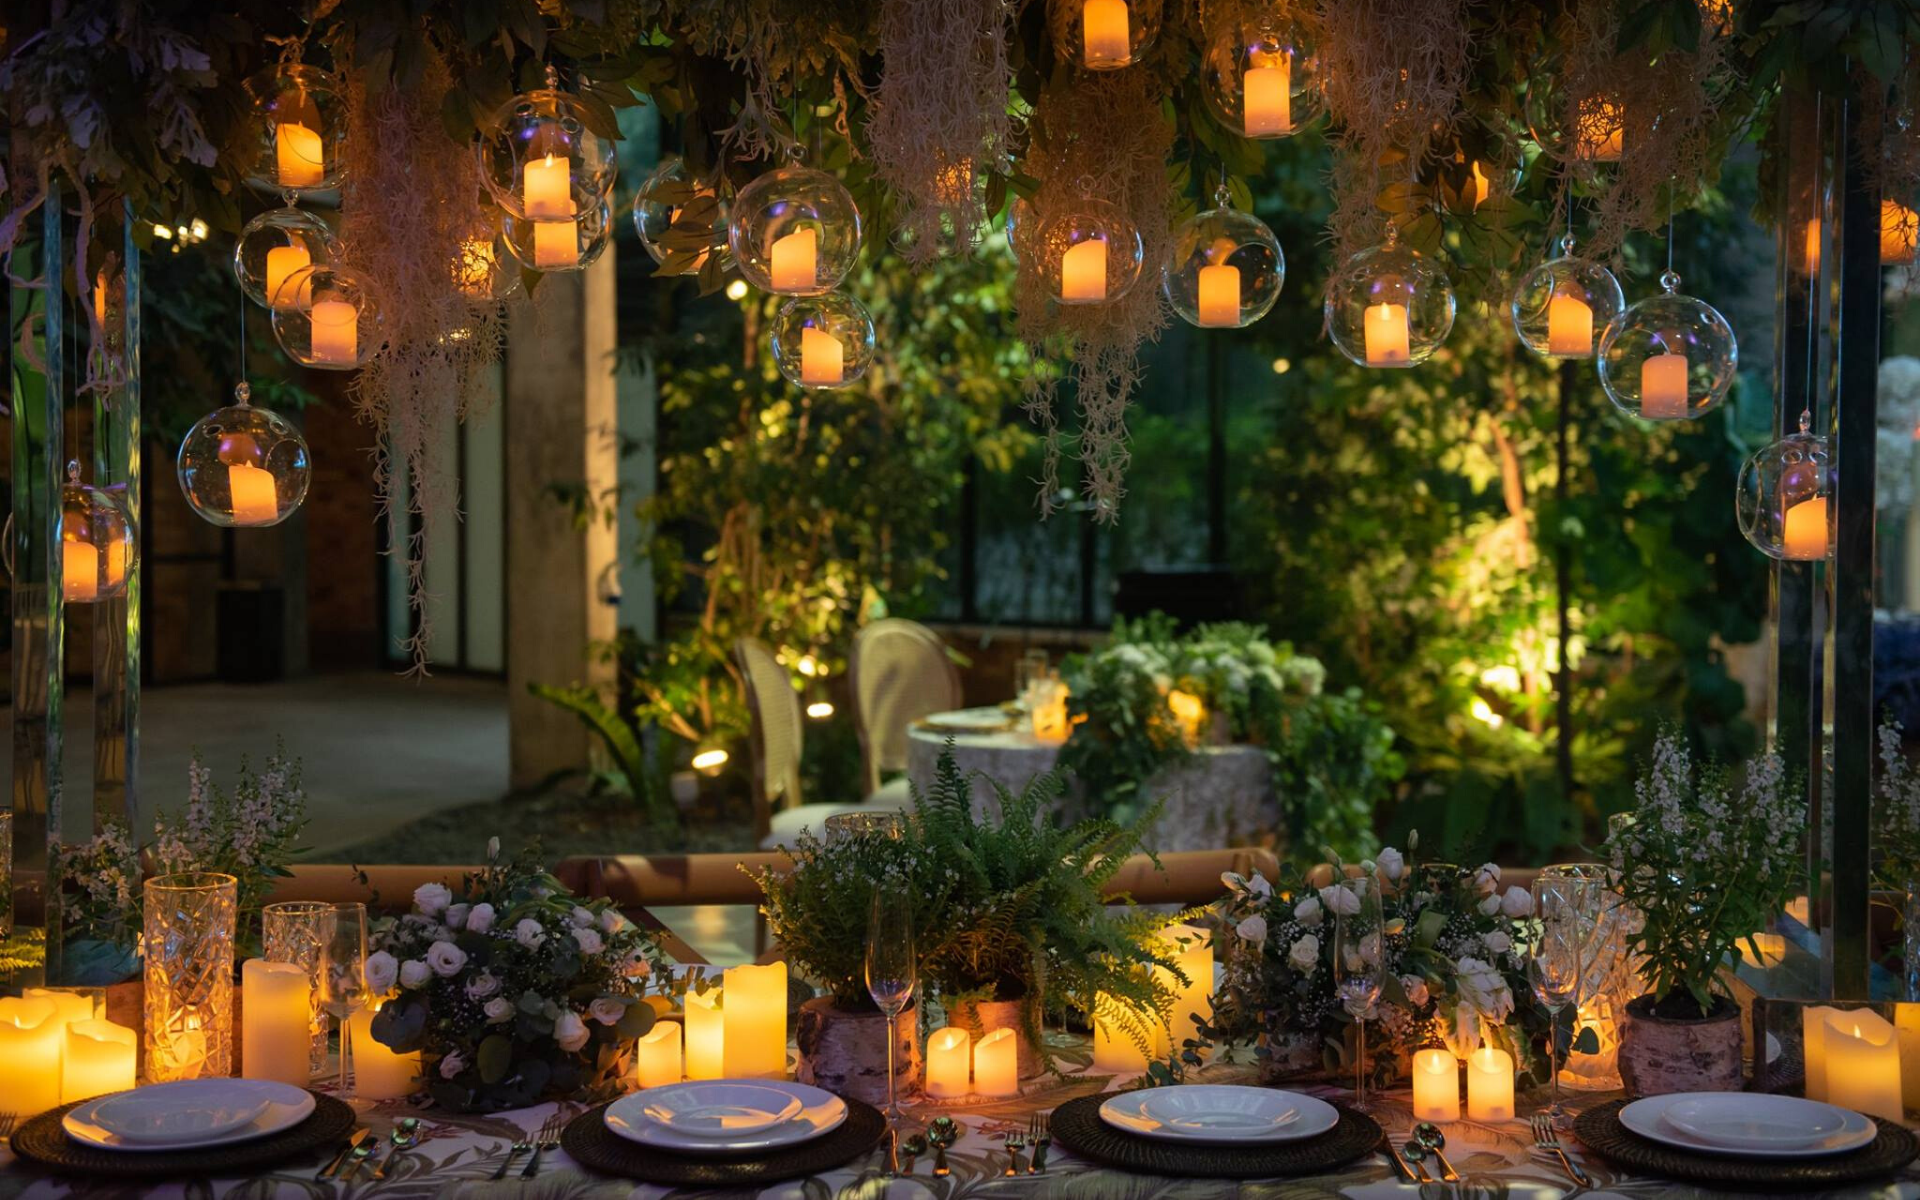 Plan Your Garden Wedding At One Of These Breathtaking Venues